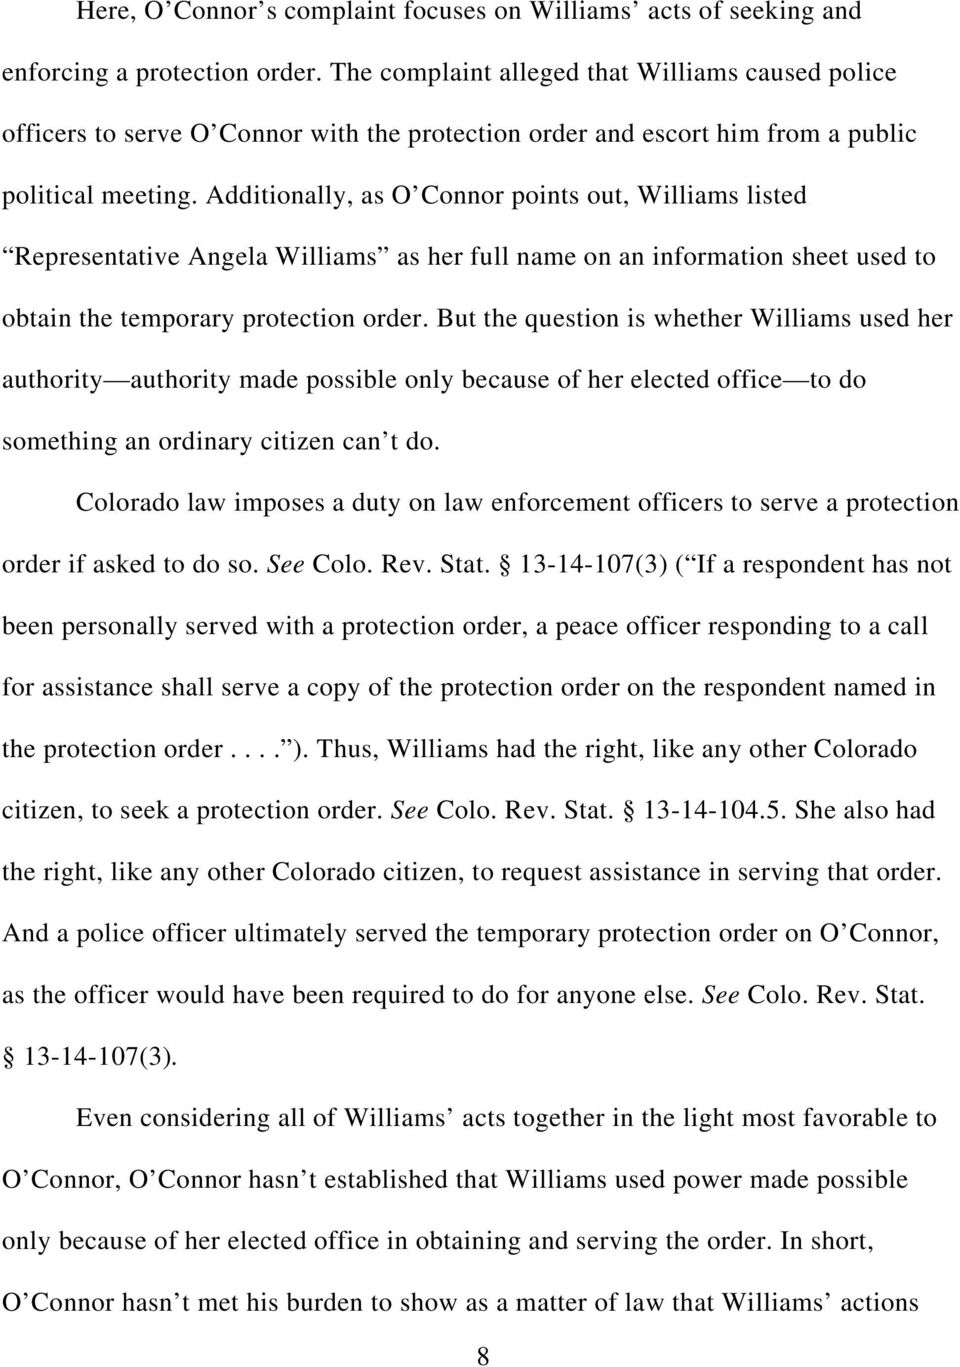 Additionally, as O Connor points out, Williams listed Representative Angela Williams as her full name on an information sheet used to obtain the temporary protection order.